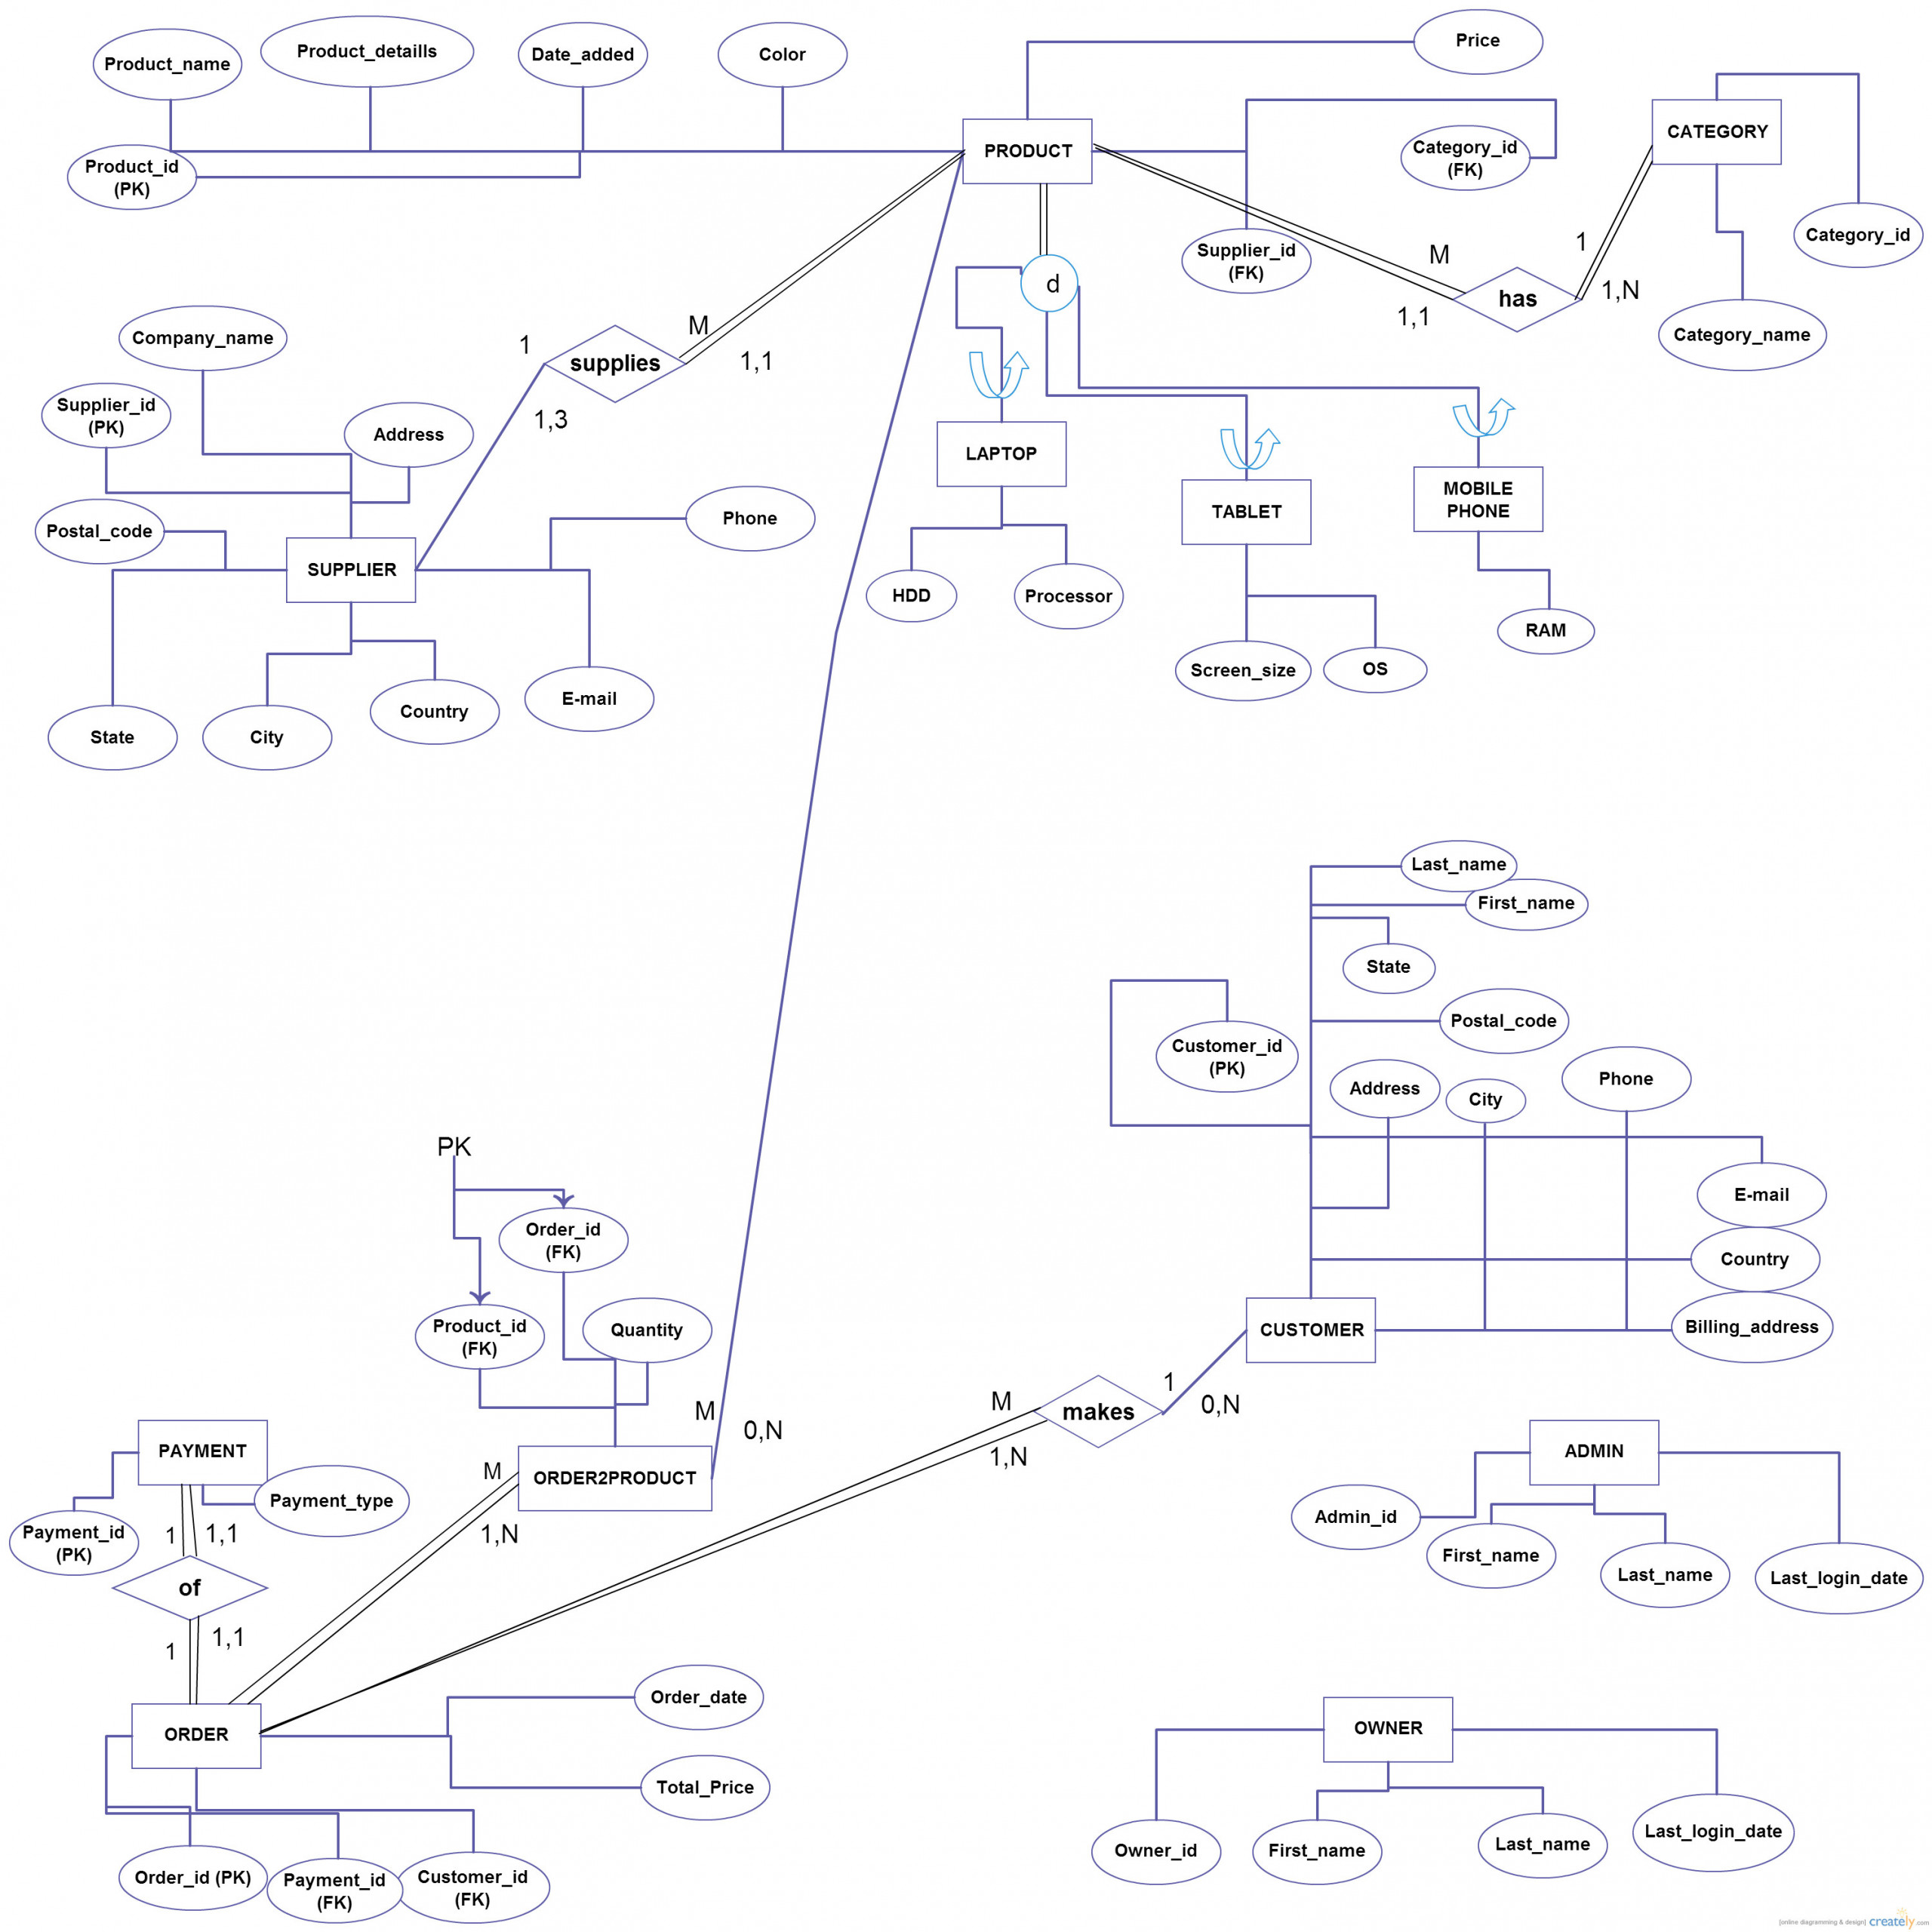 Does This E-R/eer Diagram Contain Correct Relationships And throughout Er Diagram With Cardinality